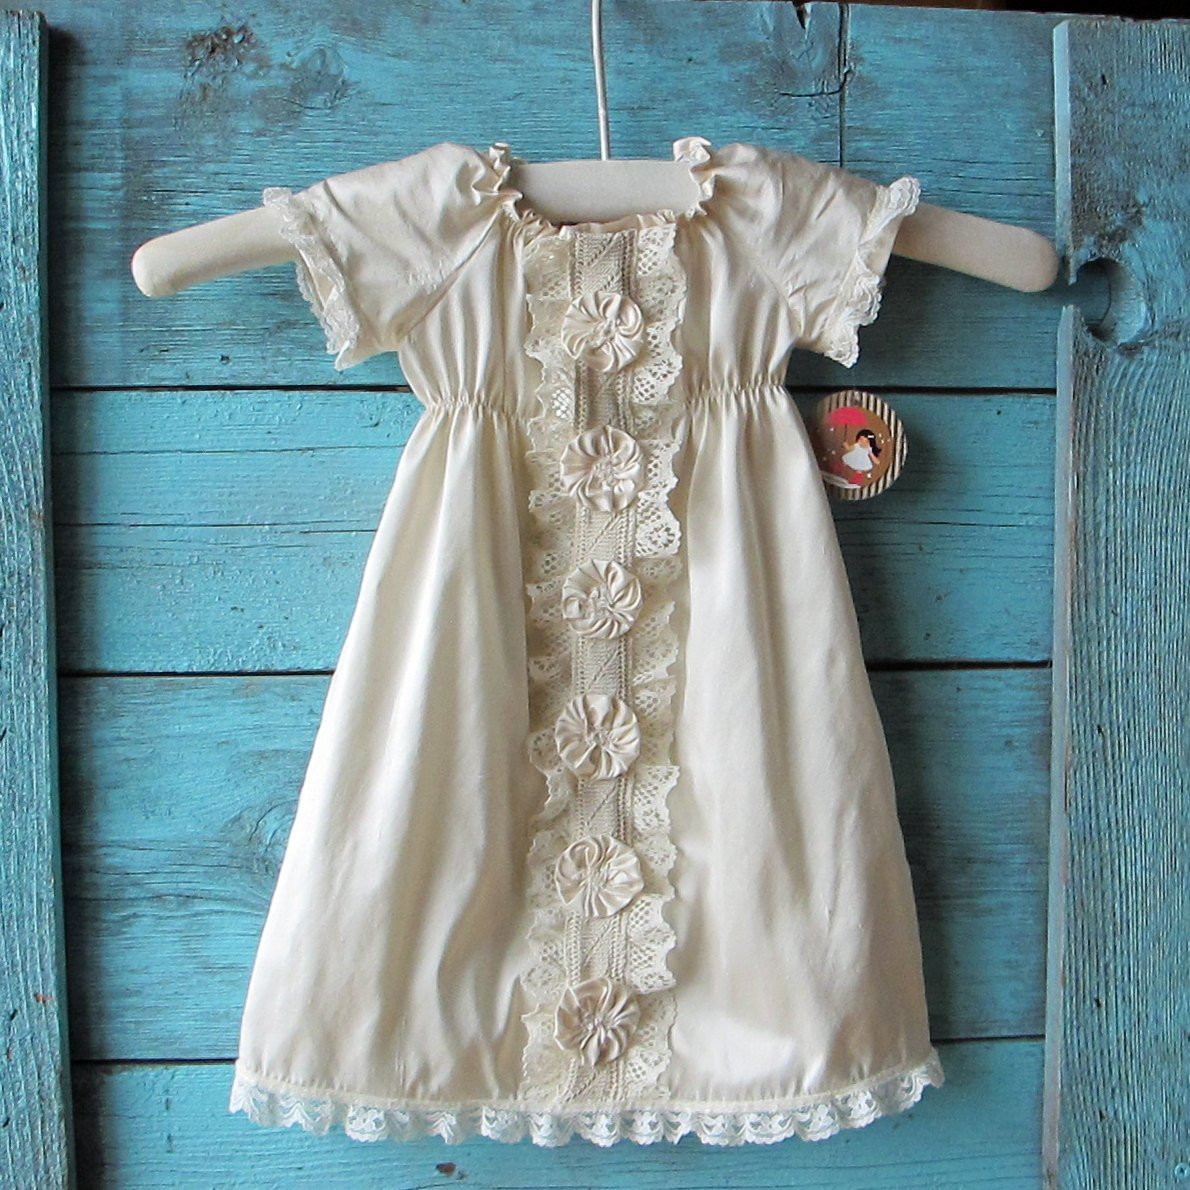 Lace Christening Dress Inspirational Dupioni Silk Baby Girl Baptism Dress Layla S Lace In Of Innovative 42 Images Lace Christening Dress